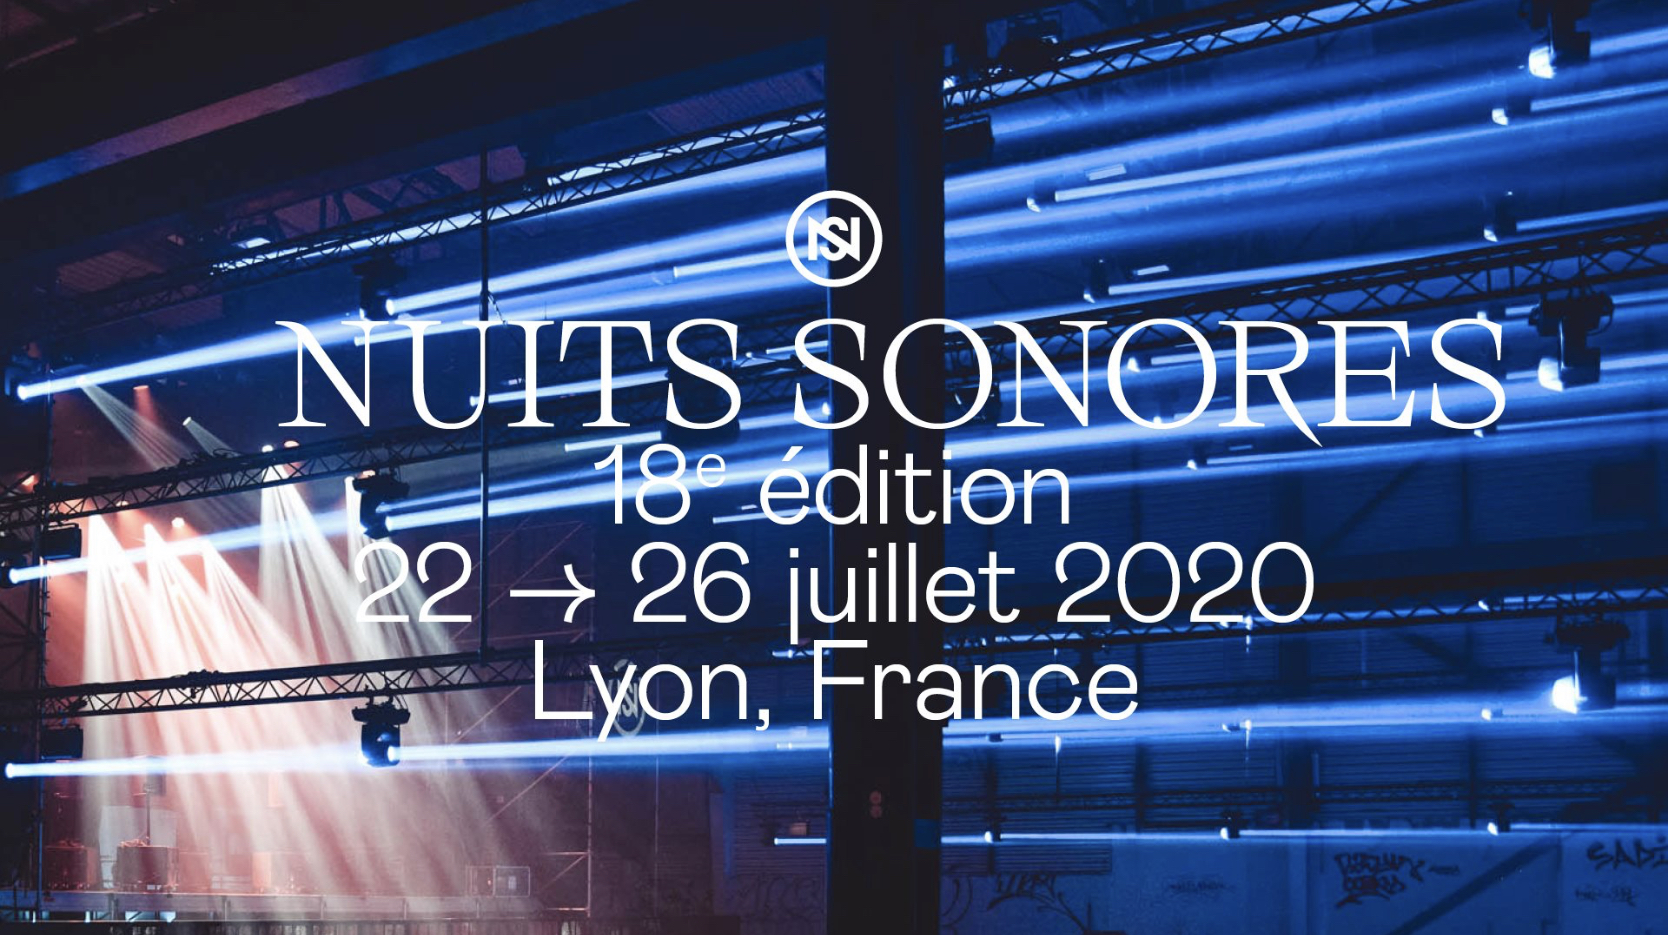 Nuits sonores 22-26 juillet 2020